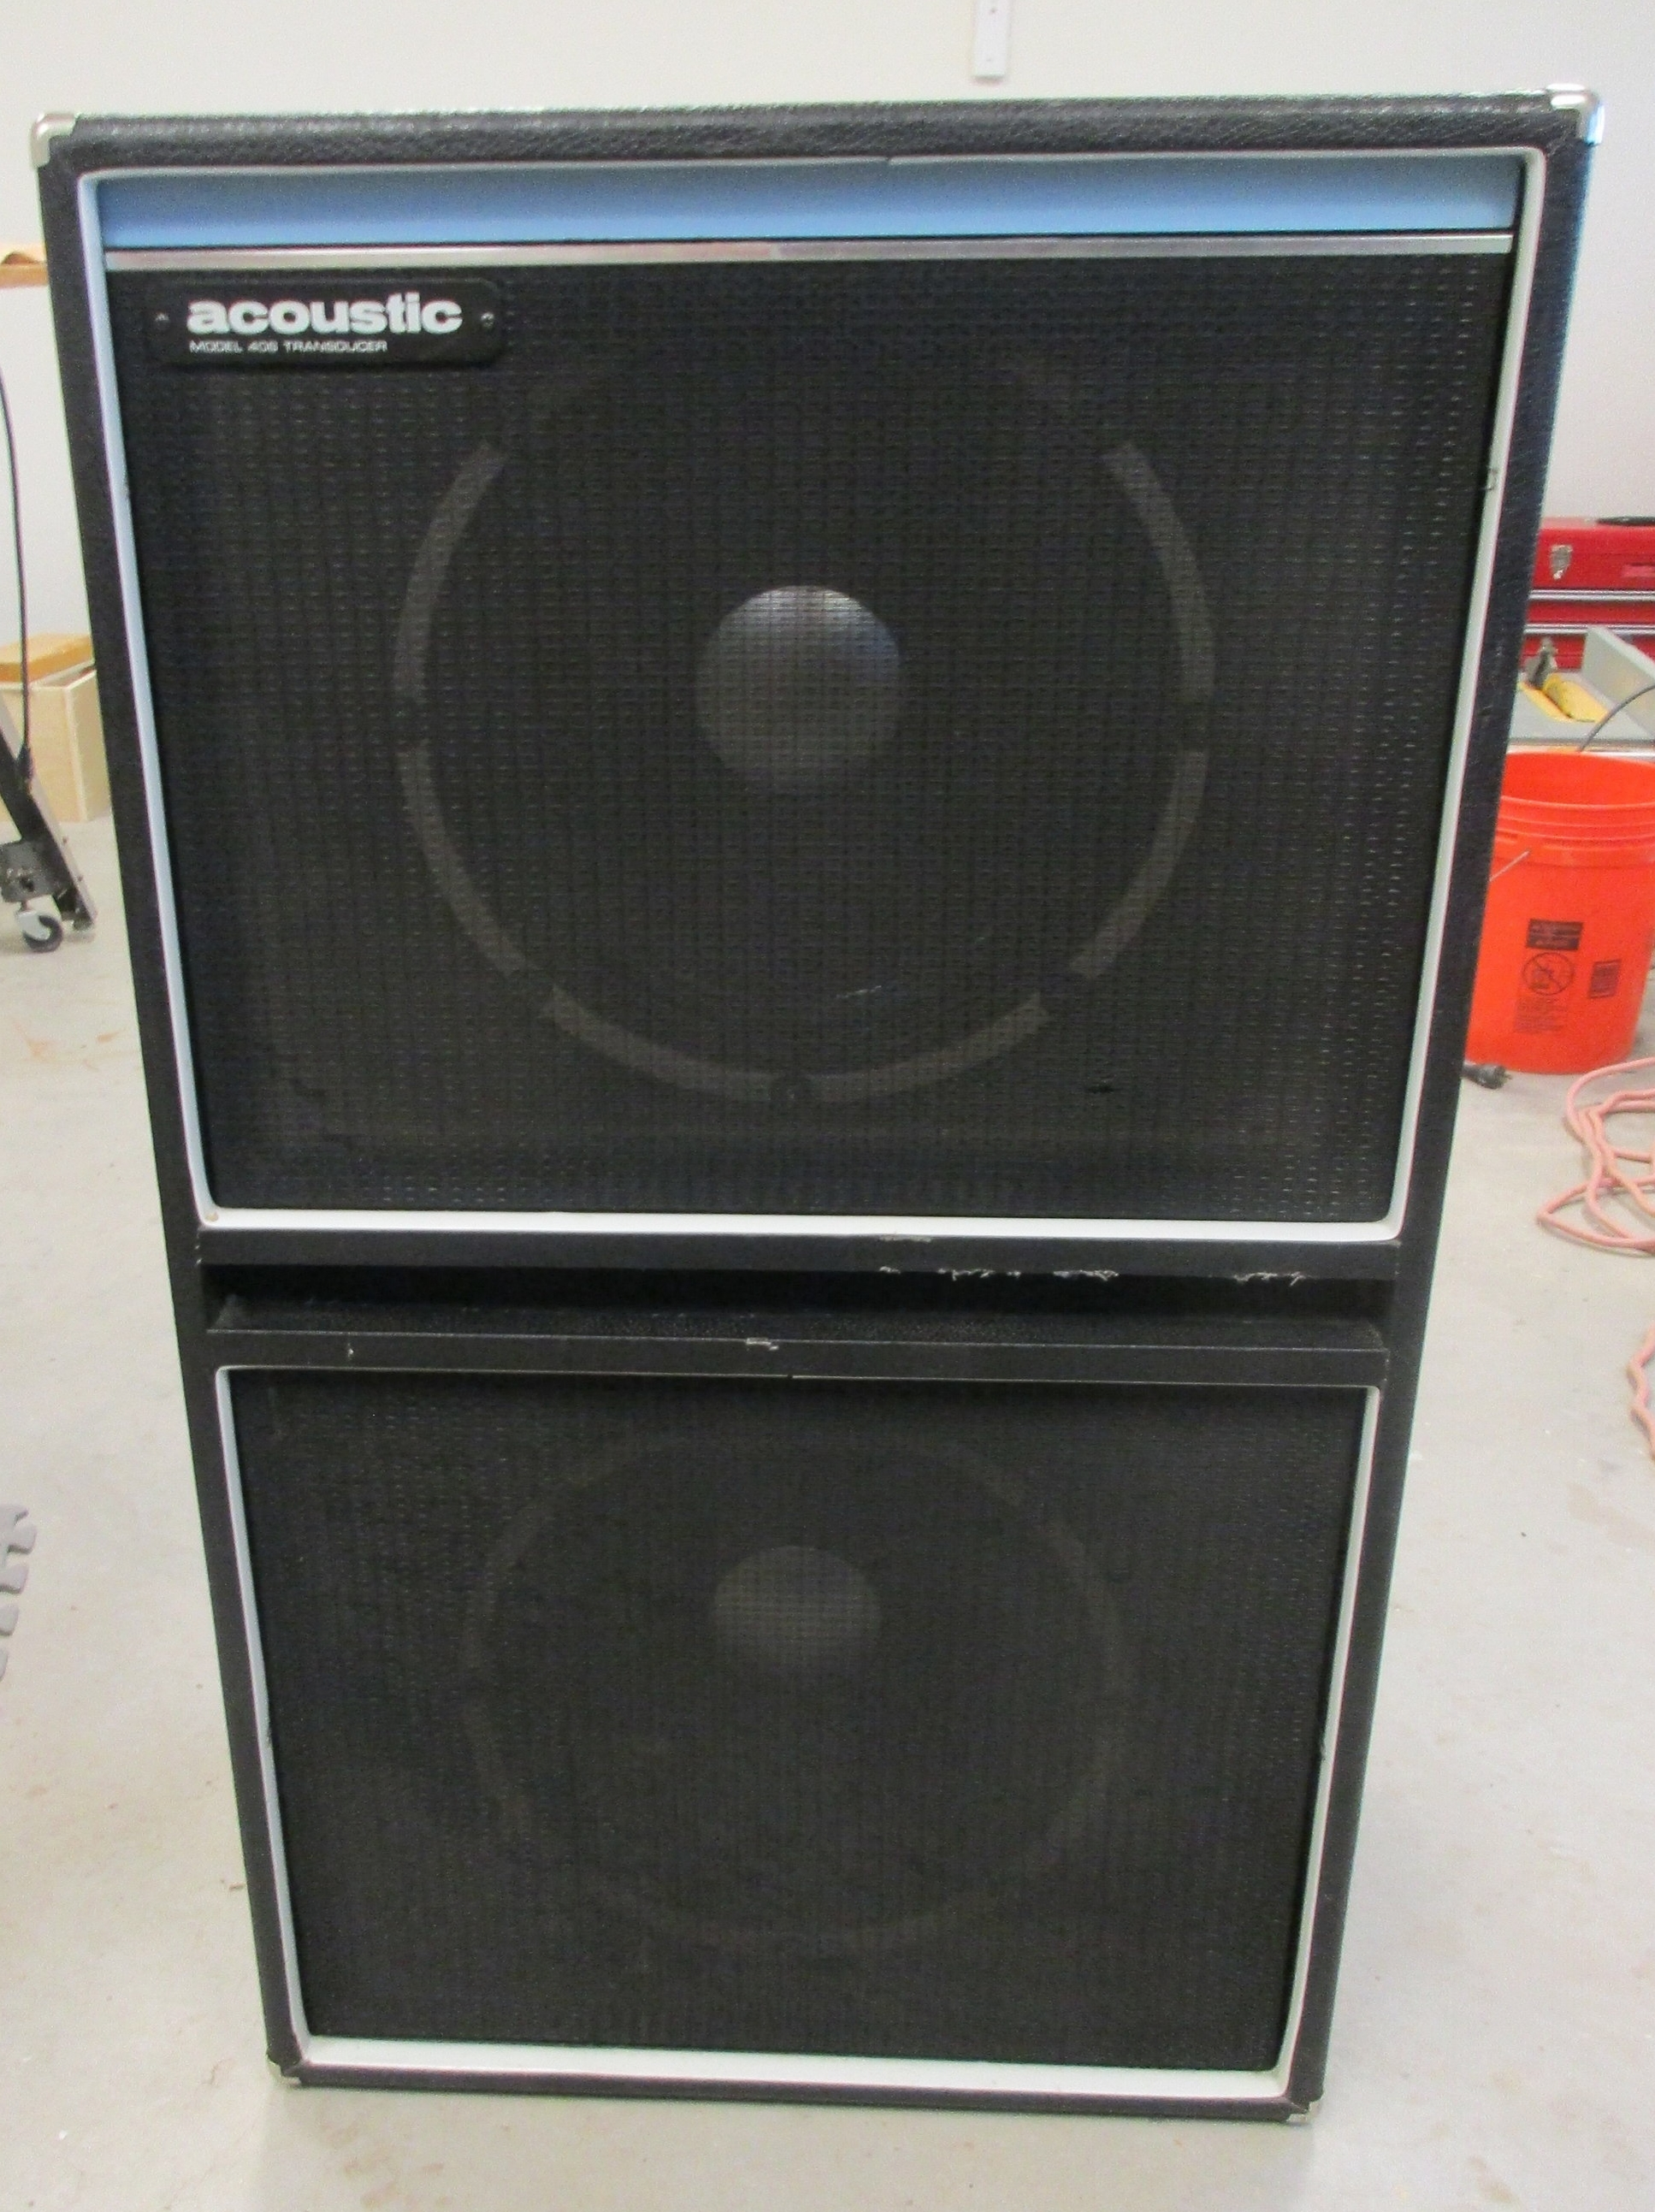 This cool 70's Acoustic 406 2x15 Bass Cab came in needing new speakers. The speaker were replaced with Weber Bass 15s and I added stuffing to the enclosure since they came without it and it a more of a necessity for bass cab. The result: Great vintage bass punch. Great sounding cab!